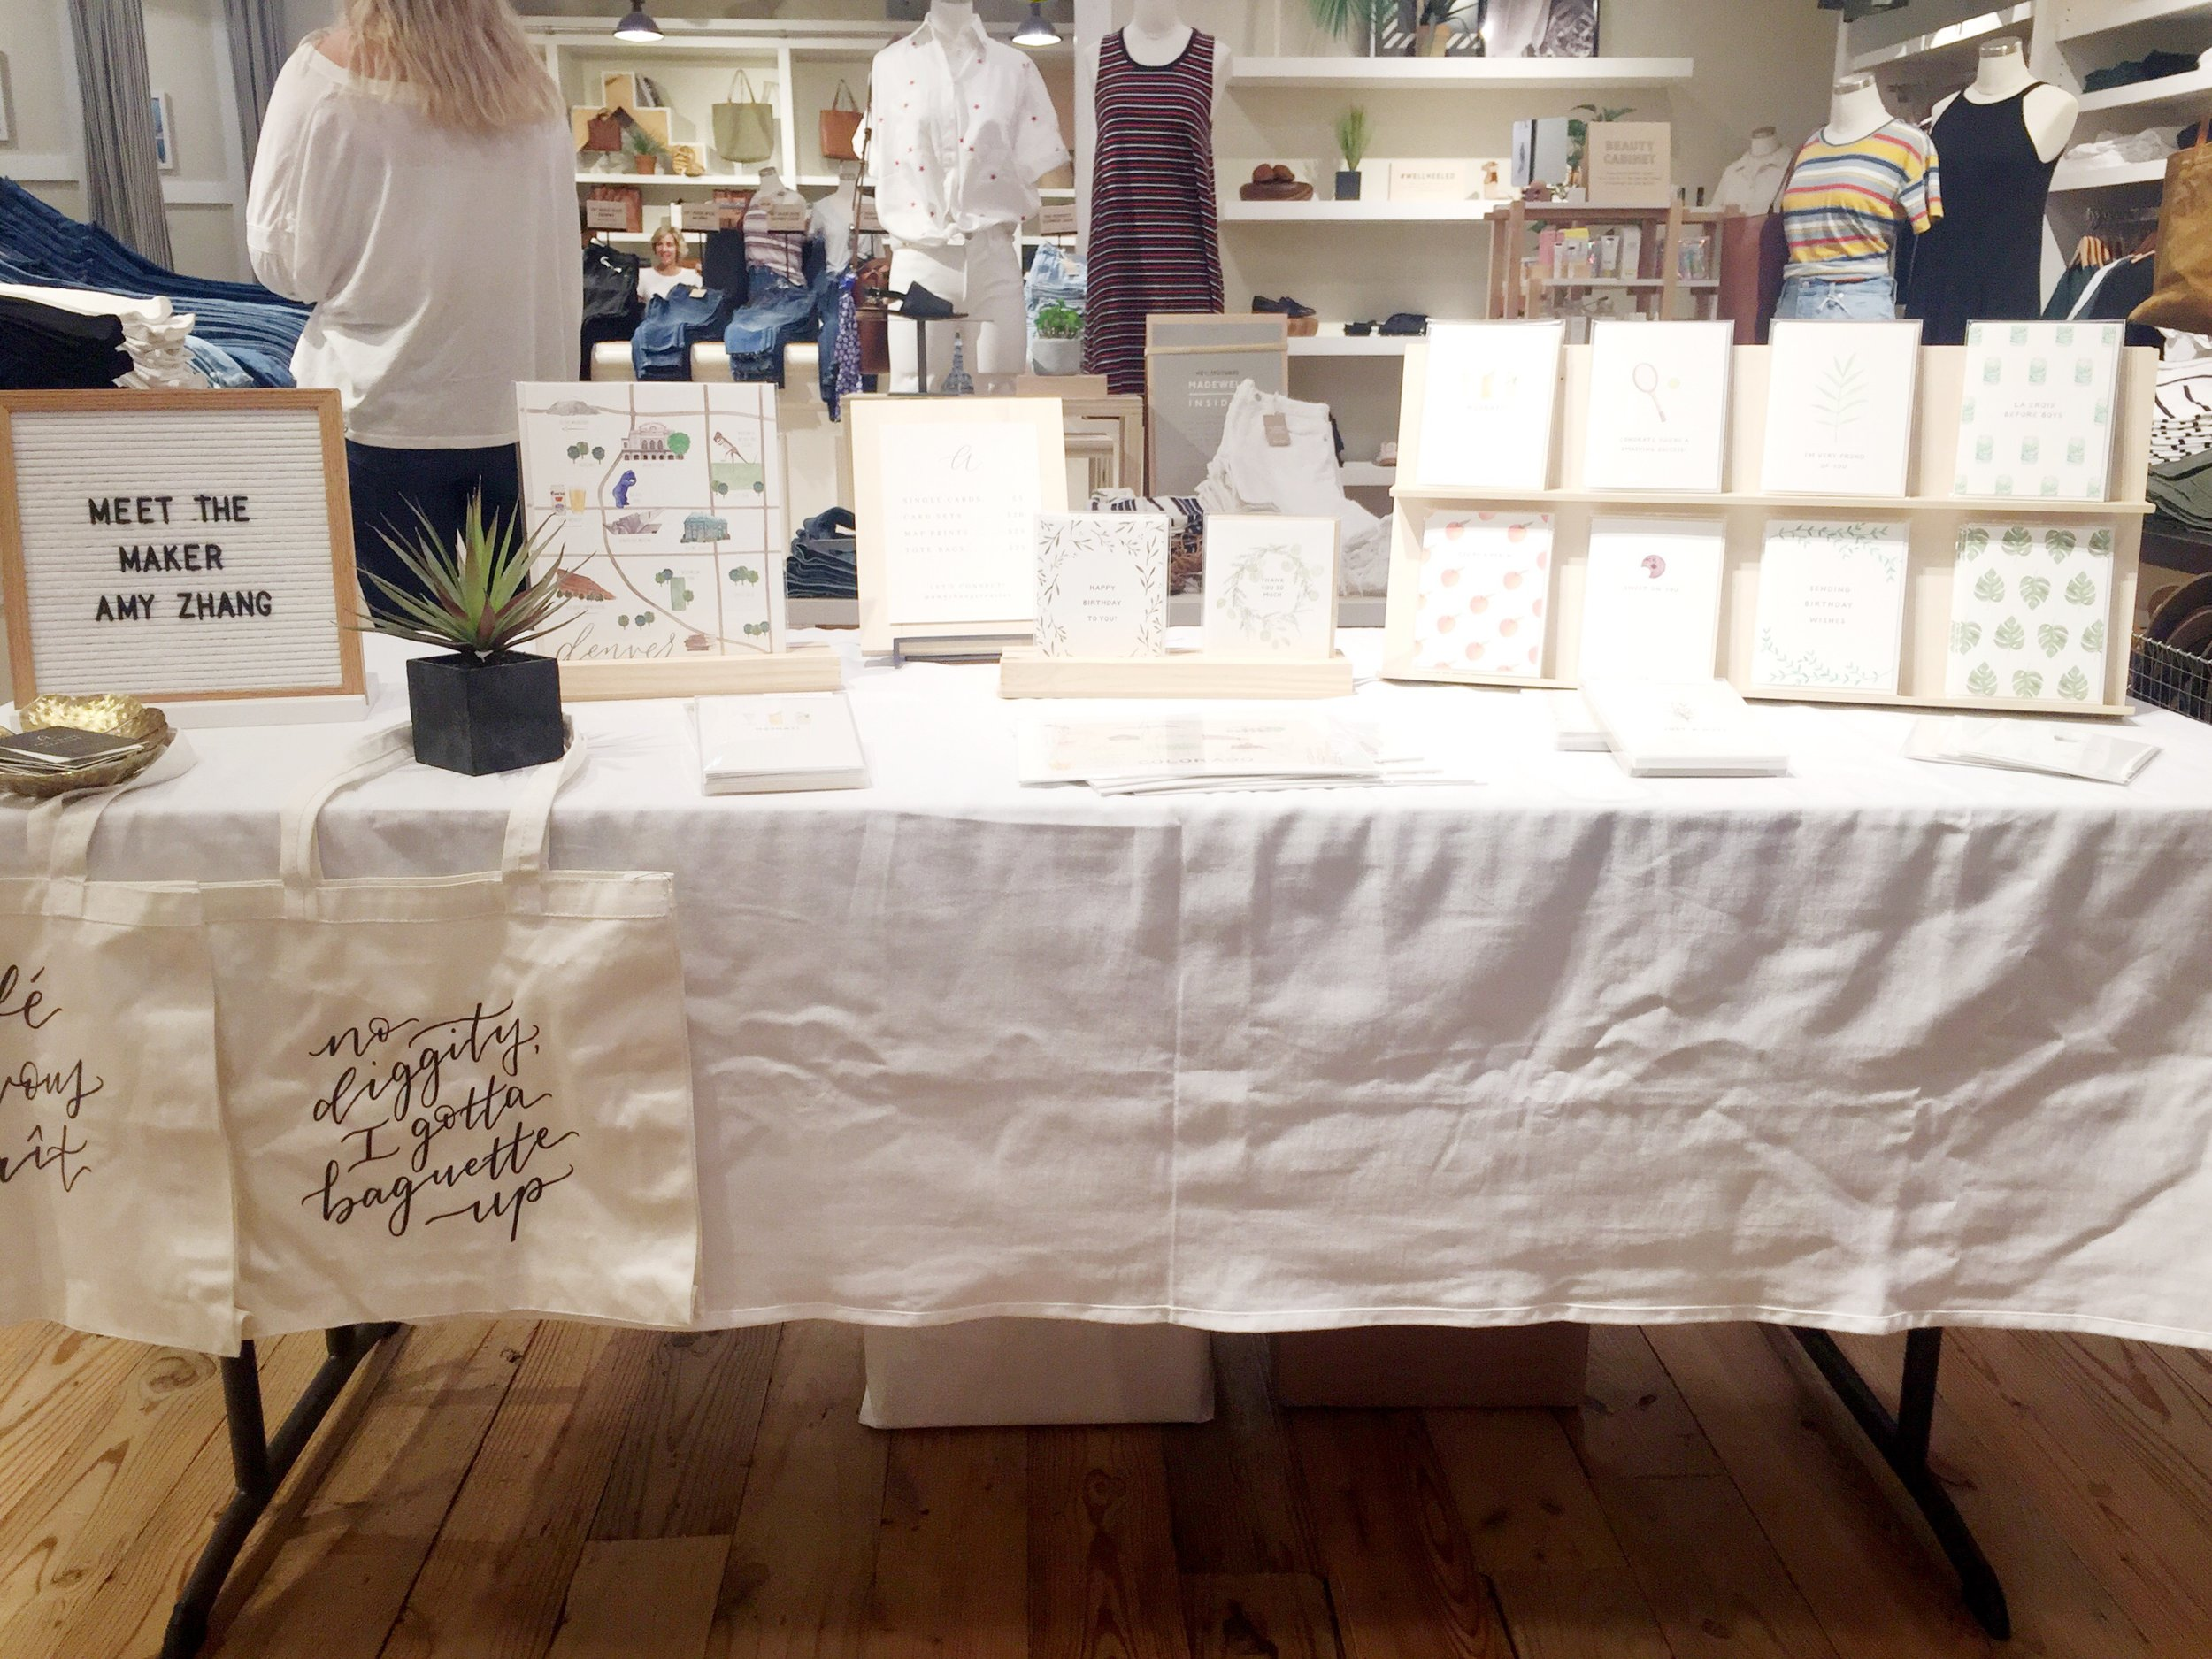 amy zhang creative | madewell pop-up event | denver greeting cards | meet the maker event | illustration inspiration